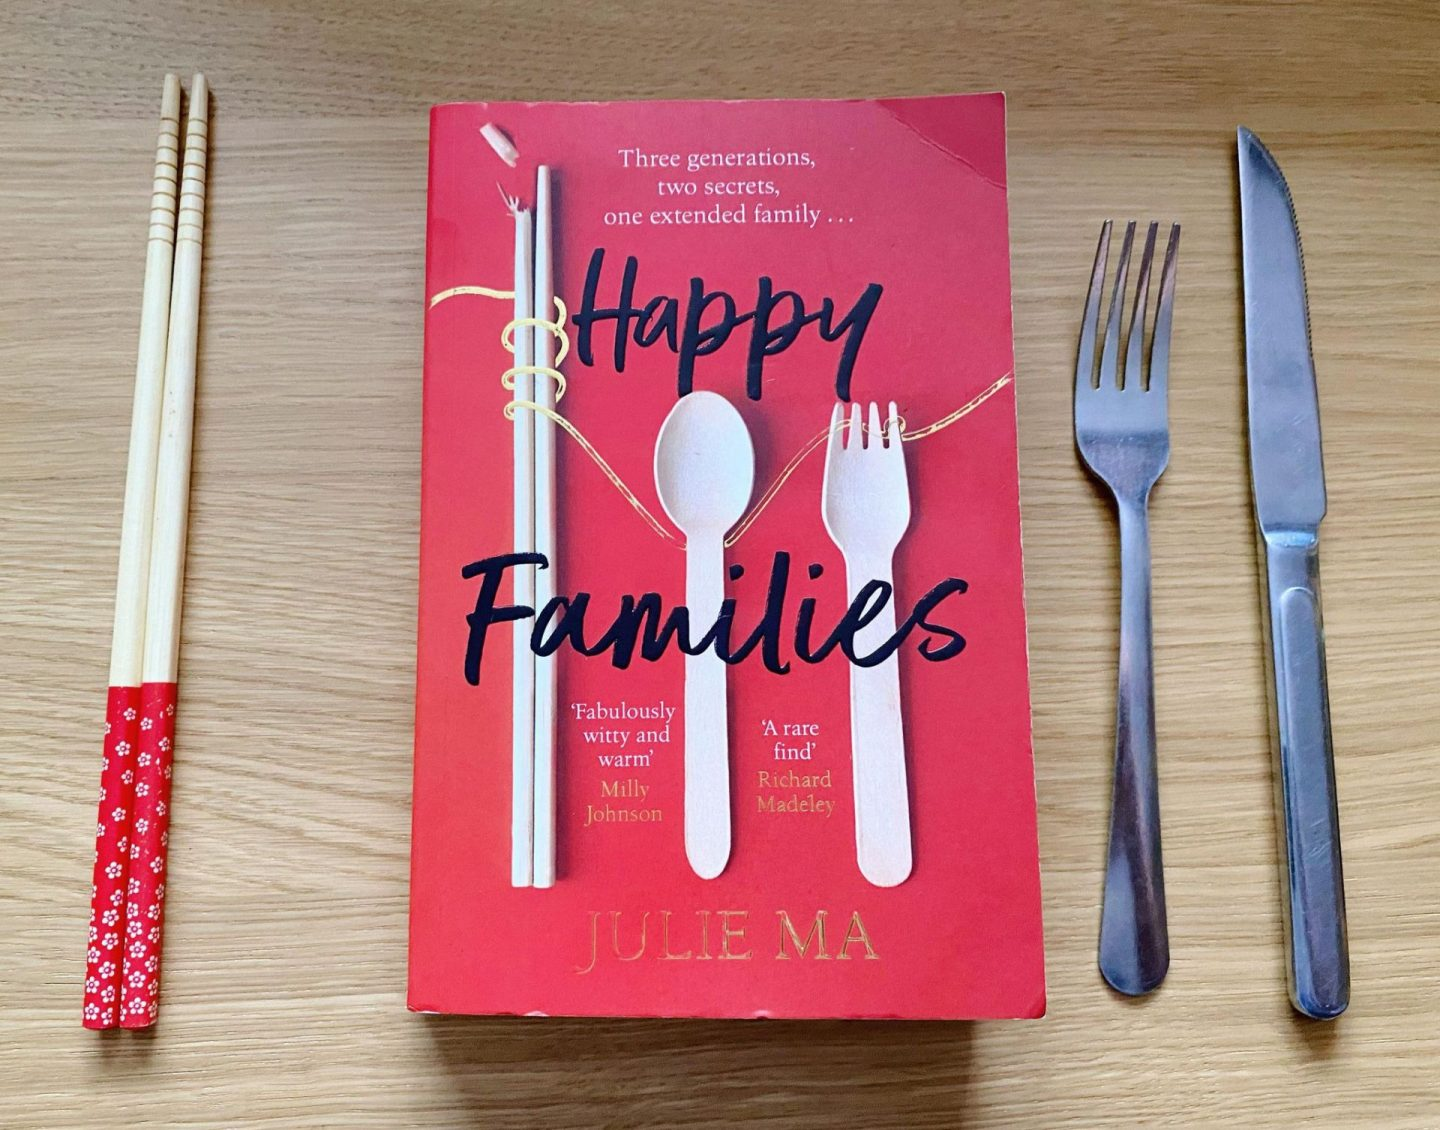 """, """"Happy Families"""" by Julie Ma –  Book Review & Giveaway"""